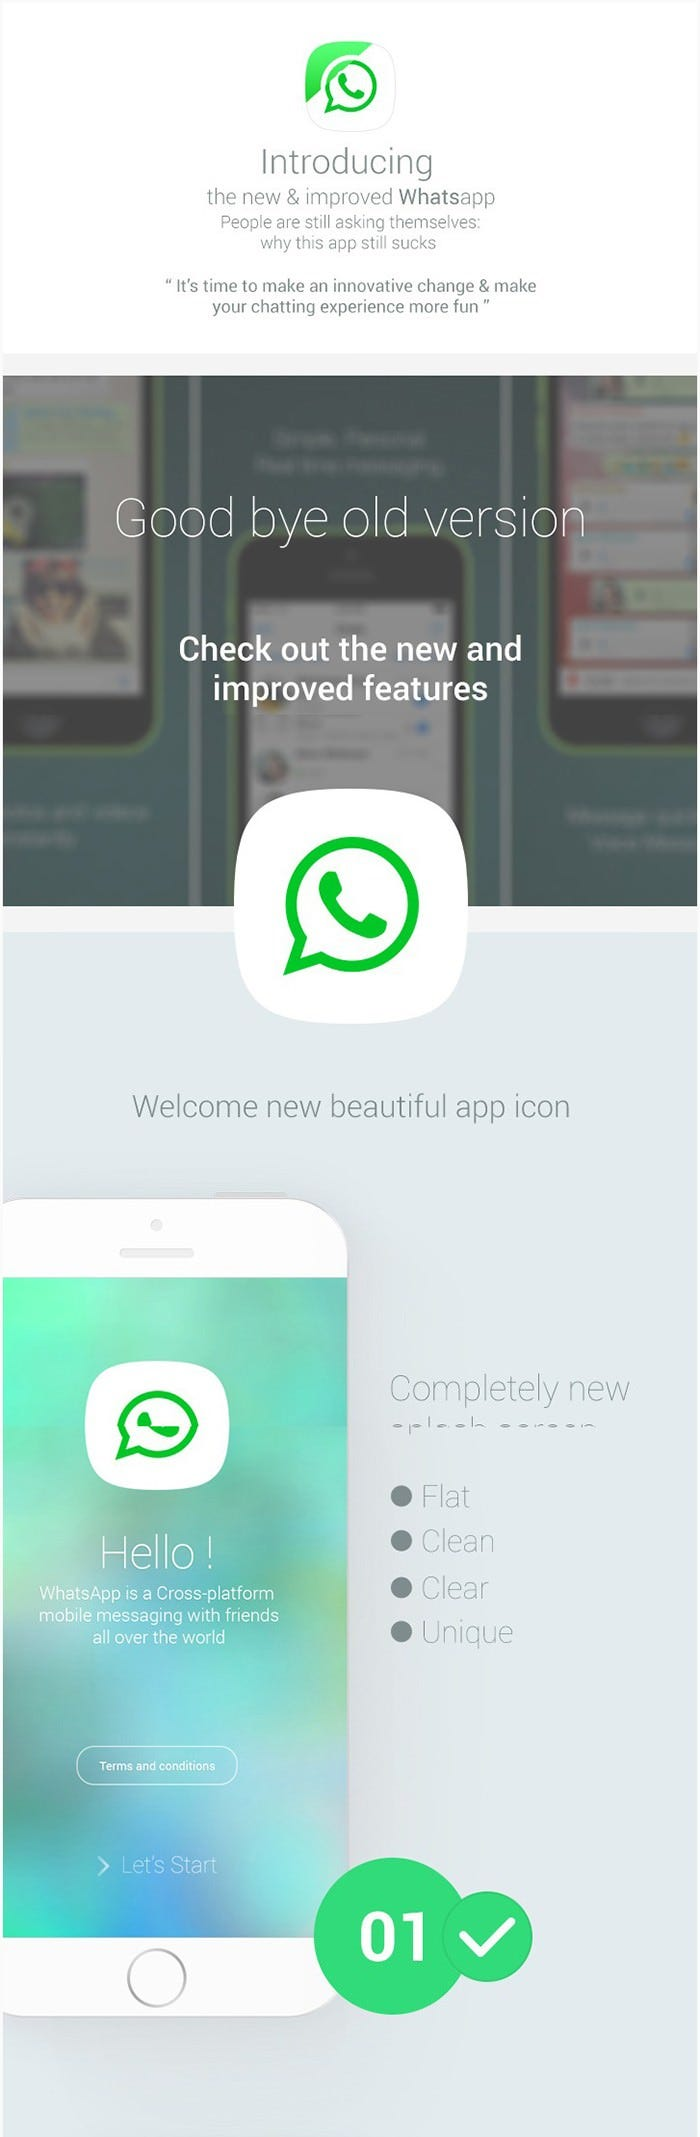 whatsapp concept ios